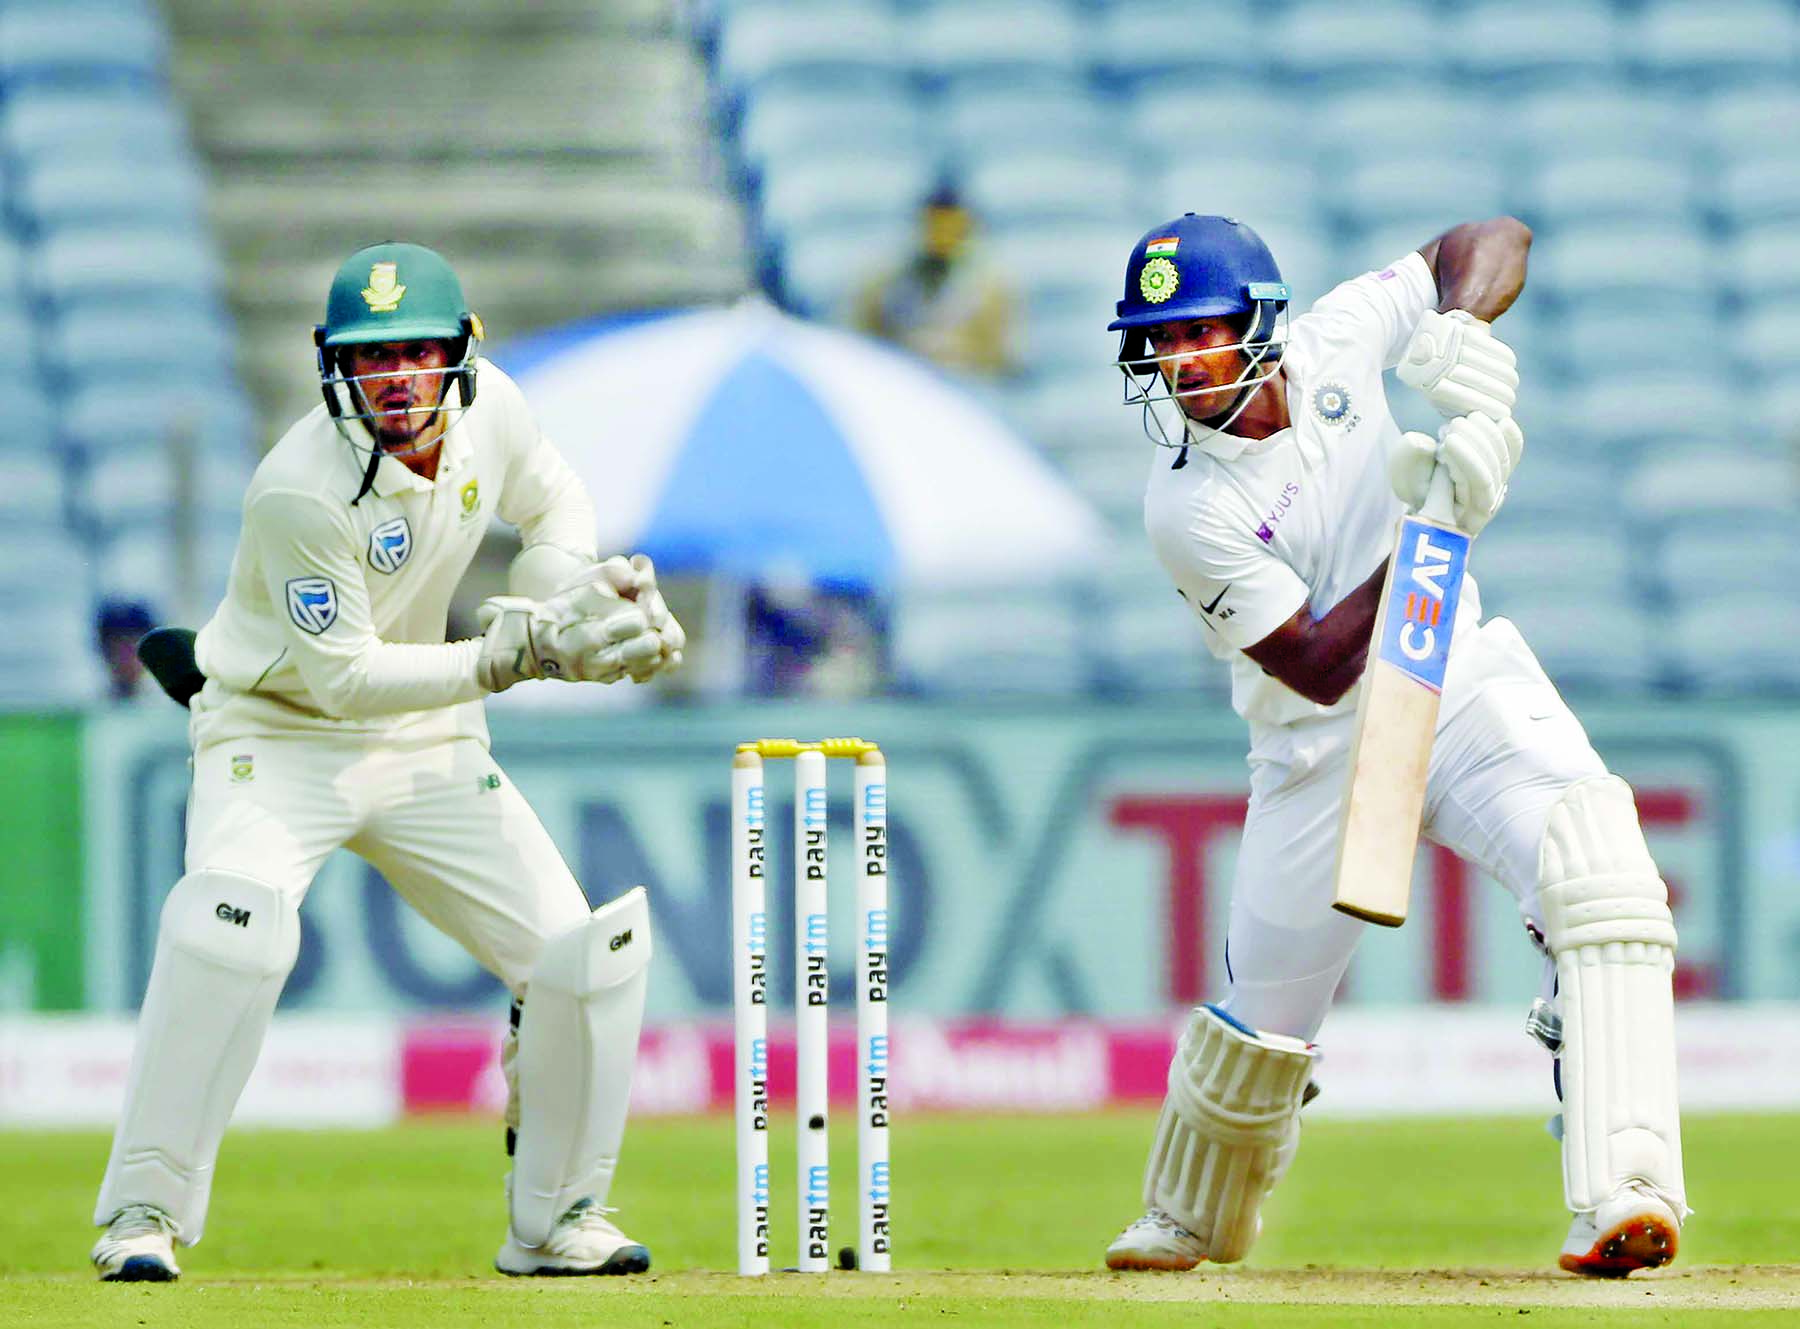 Agarwal ton helps India take early control on Day 1